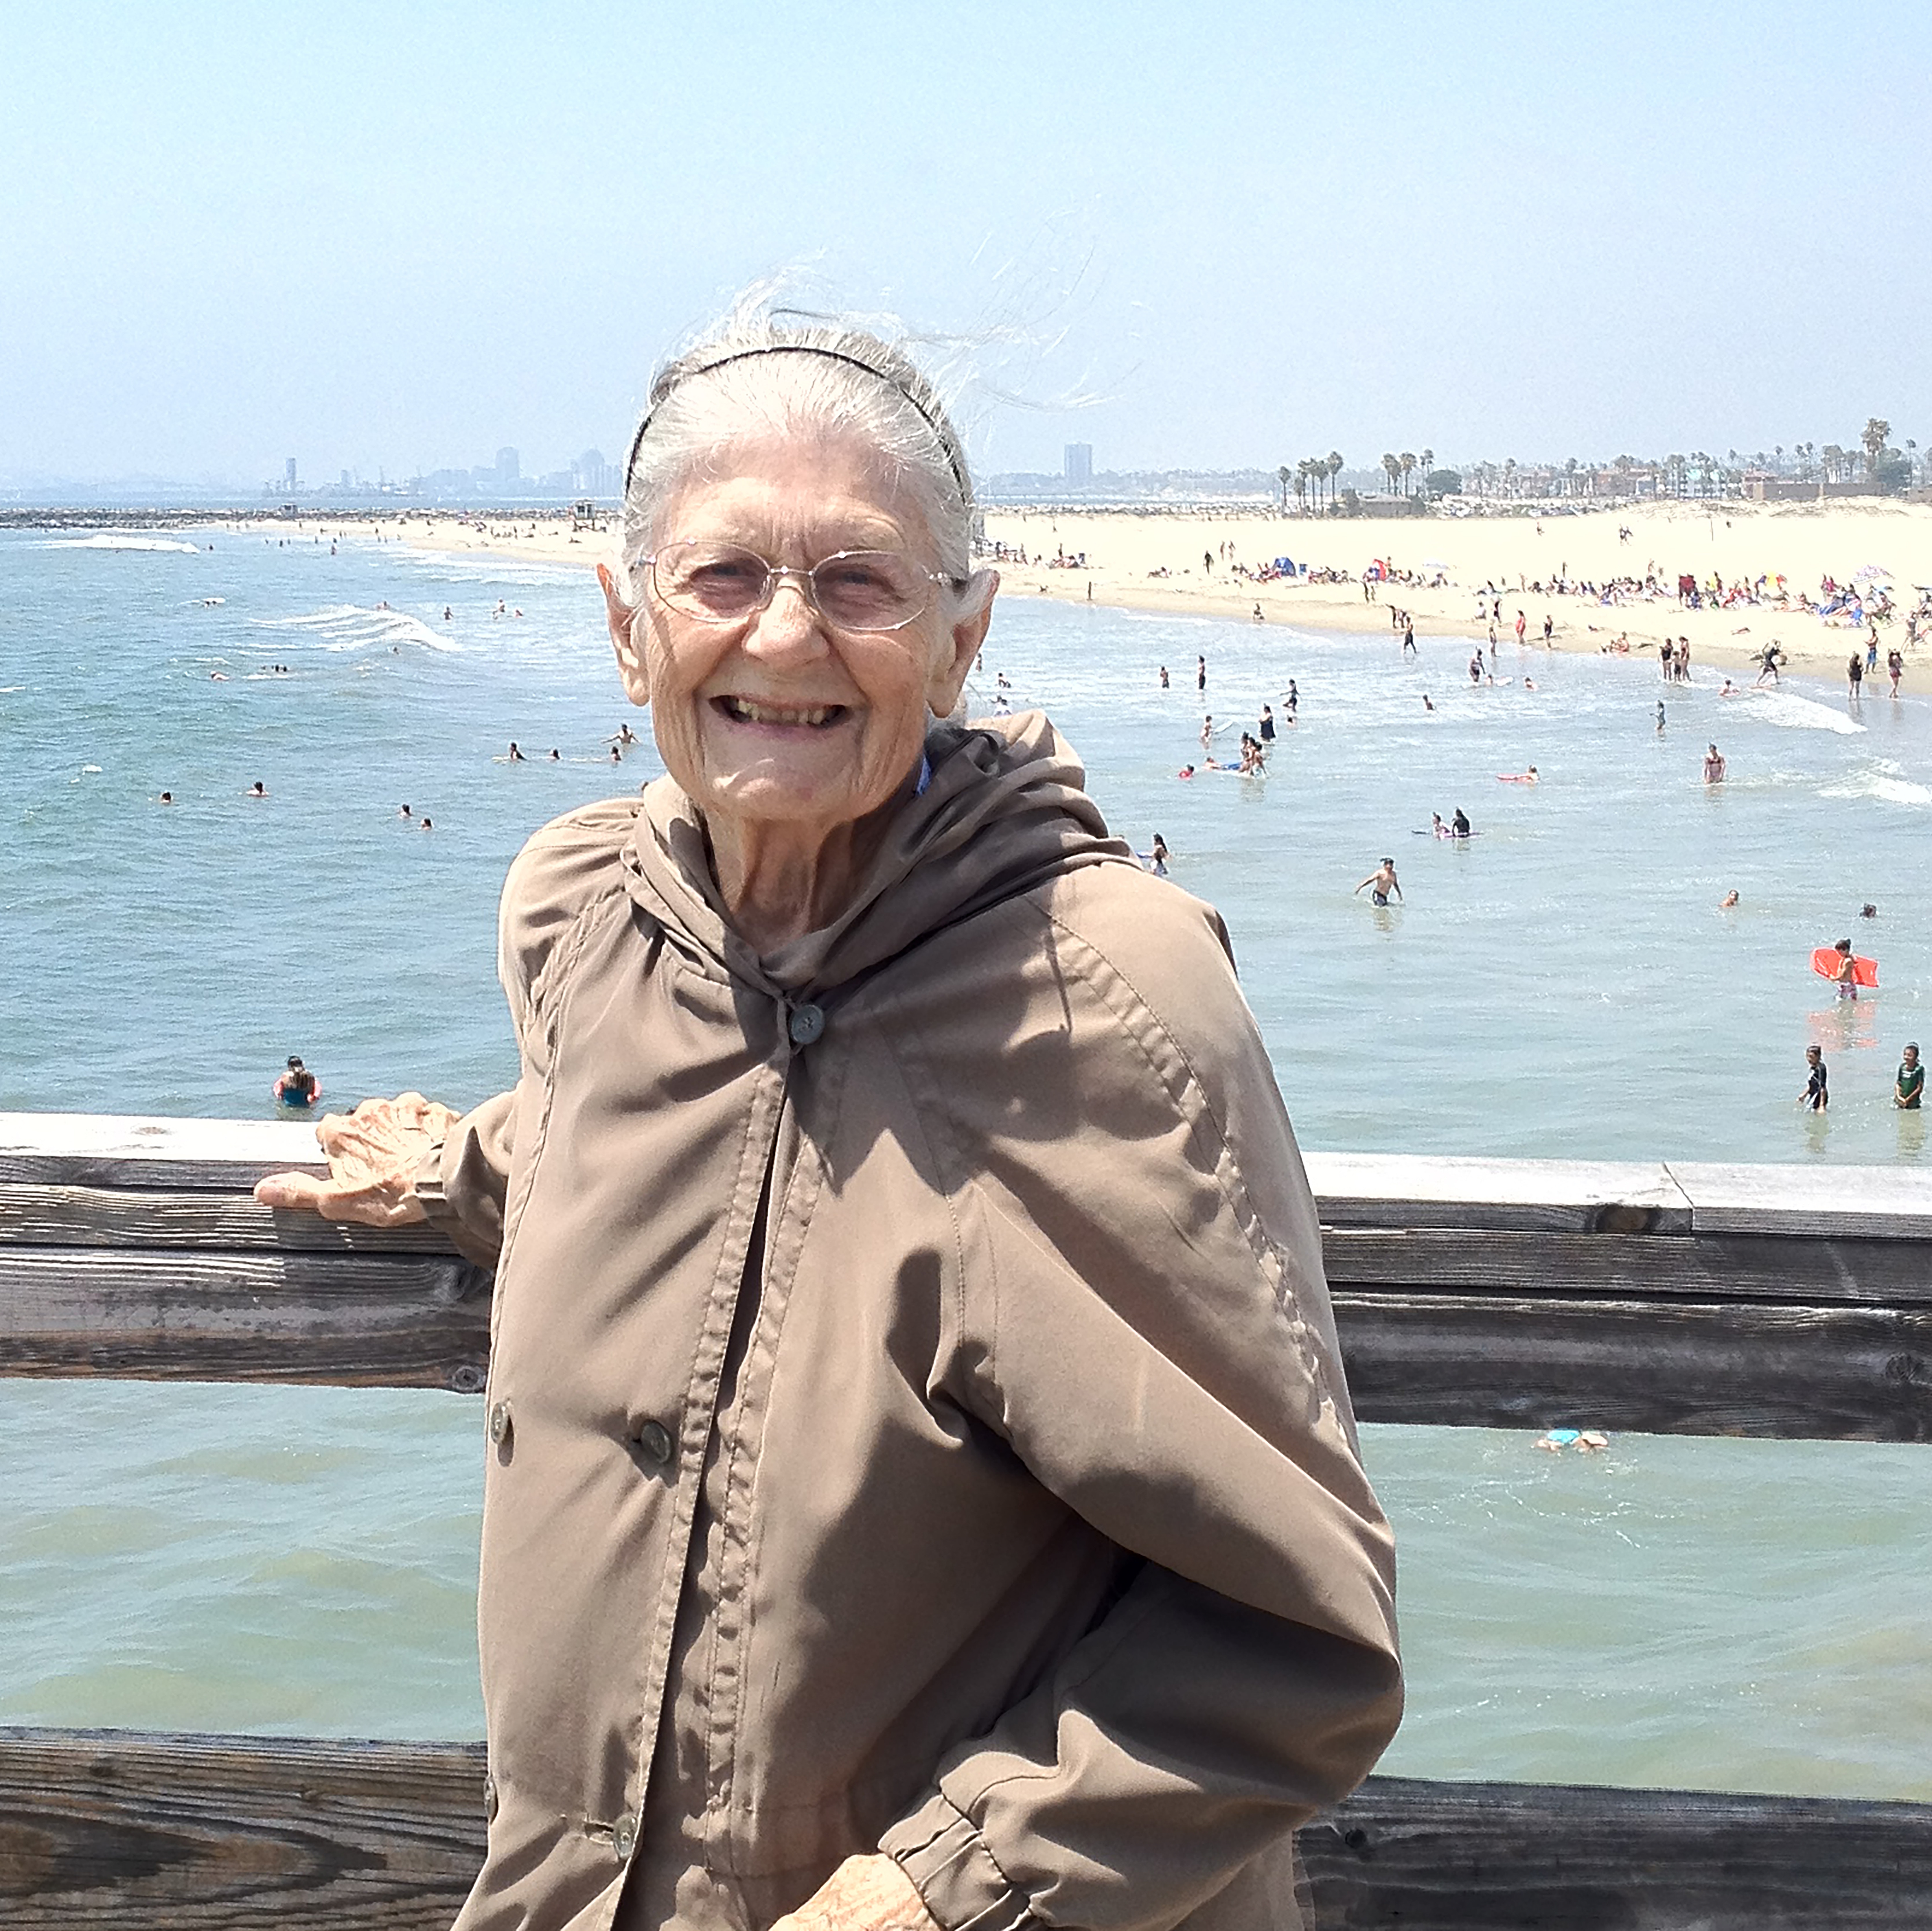 An older woman poses, smiling, at a wooden railing; in the distance behind her, people at the beach.